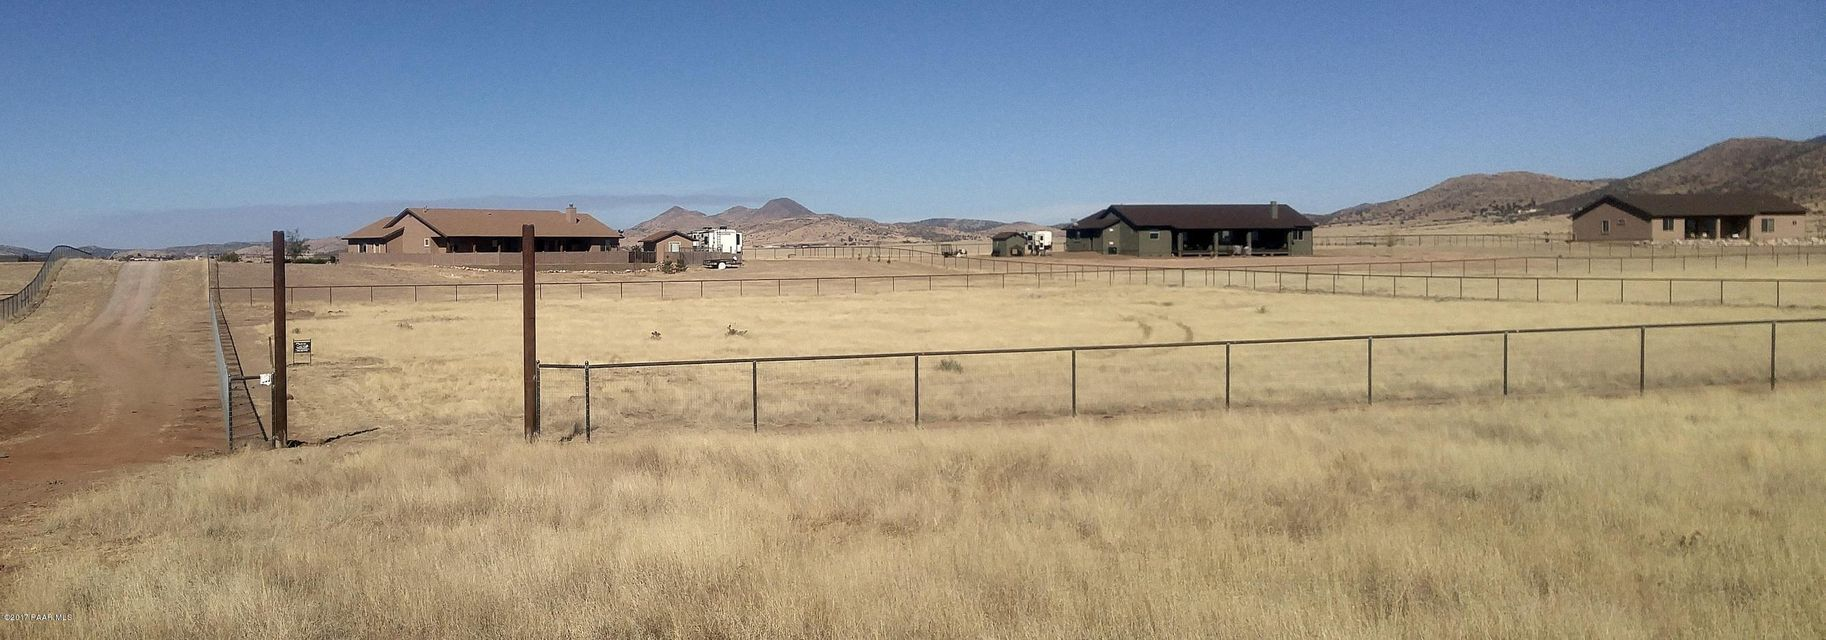 2.01 Acres N Covered Wagon Trail Prescott Valley, AZ 86314 - MLS #: 995174